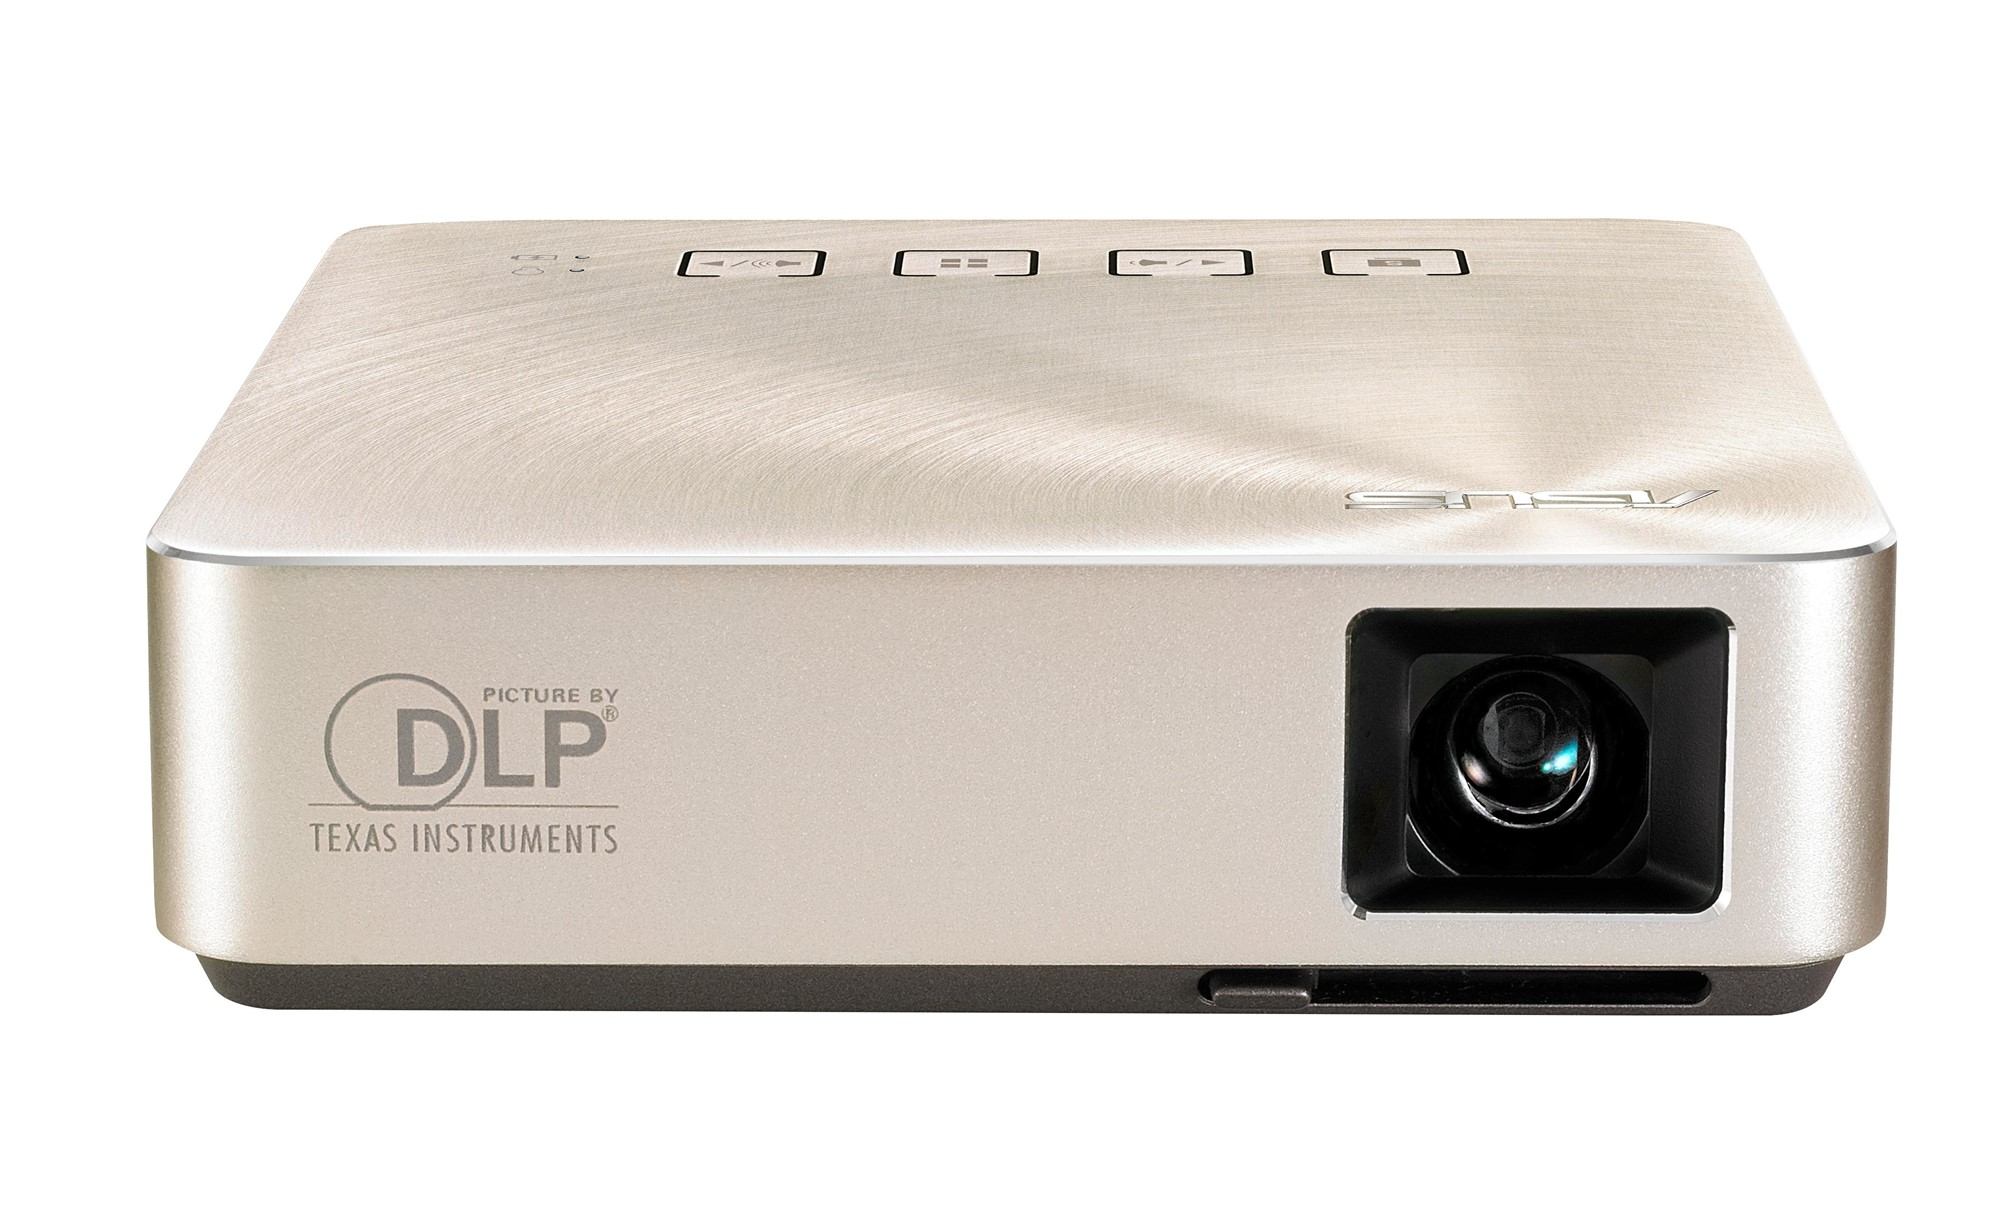 ASUS S1 PORTABLE PROJECTOR 200ANSI LUMENS DLP WVGA (854X480) GOLD DATA